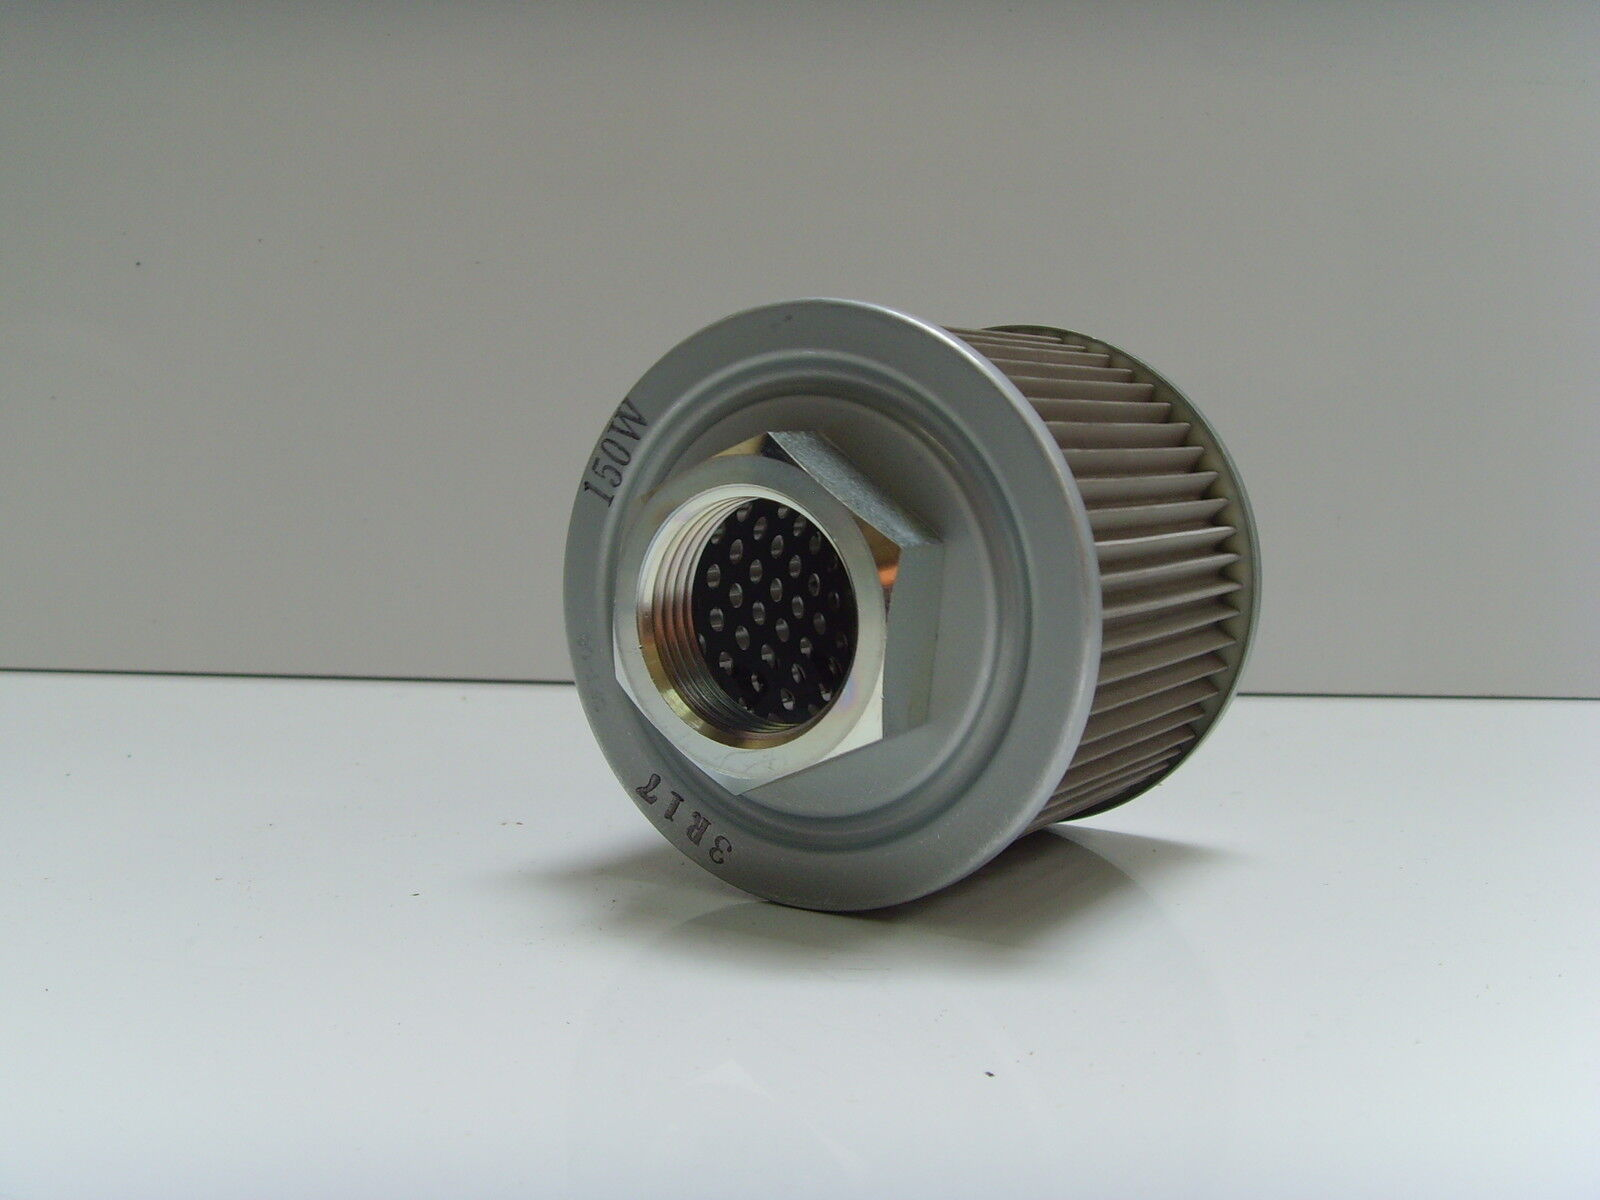 Details about Takeuchi TB016 Hydraulic Filter Suction Replaces 1550010150T,  15500-10150T